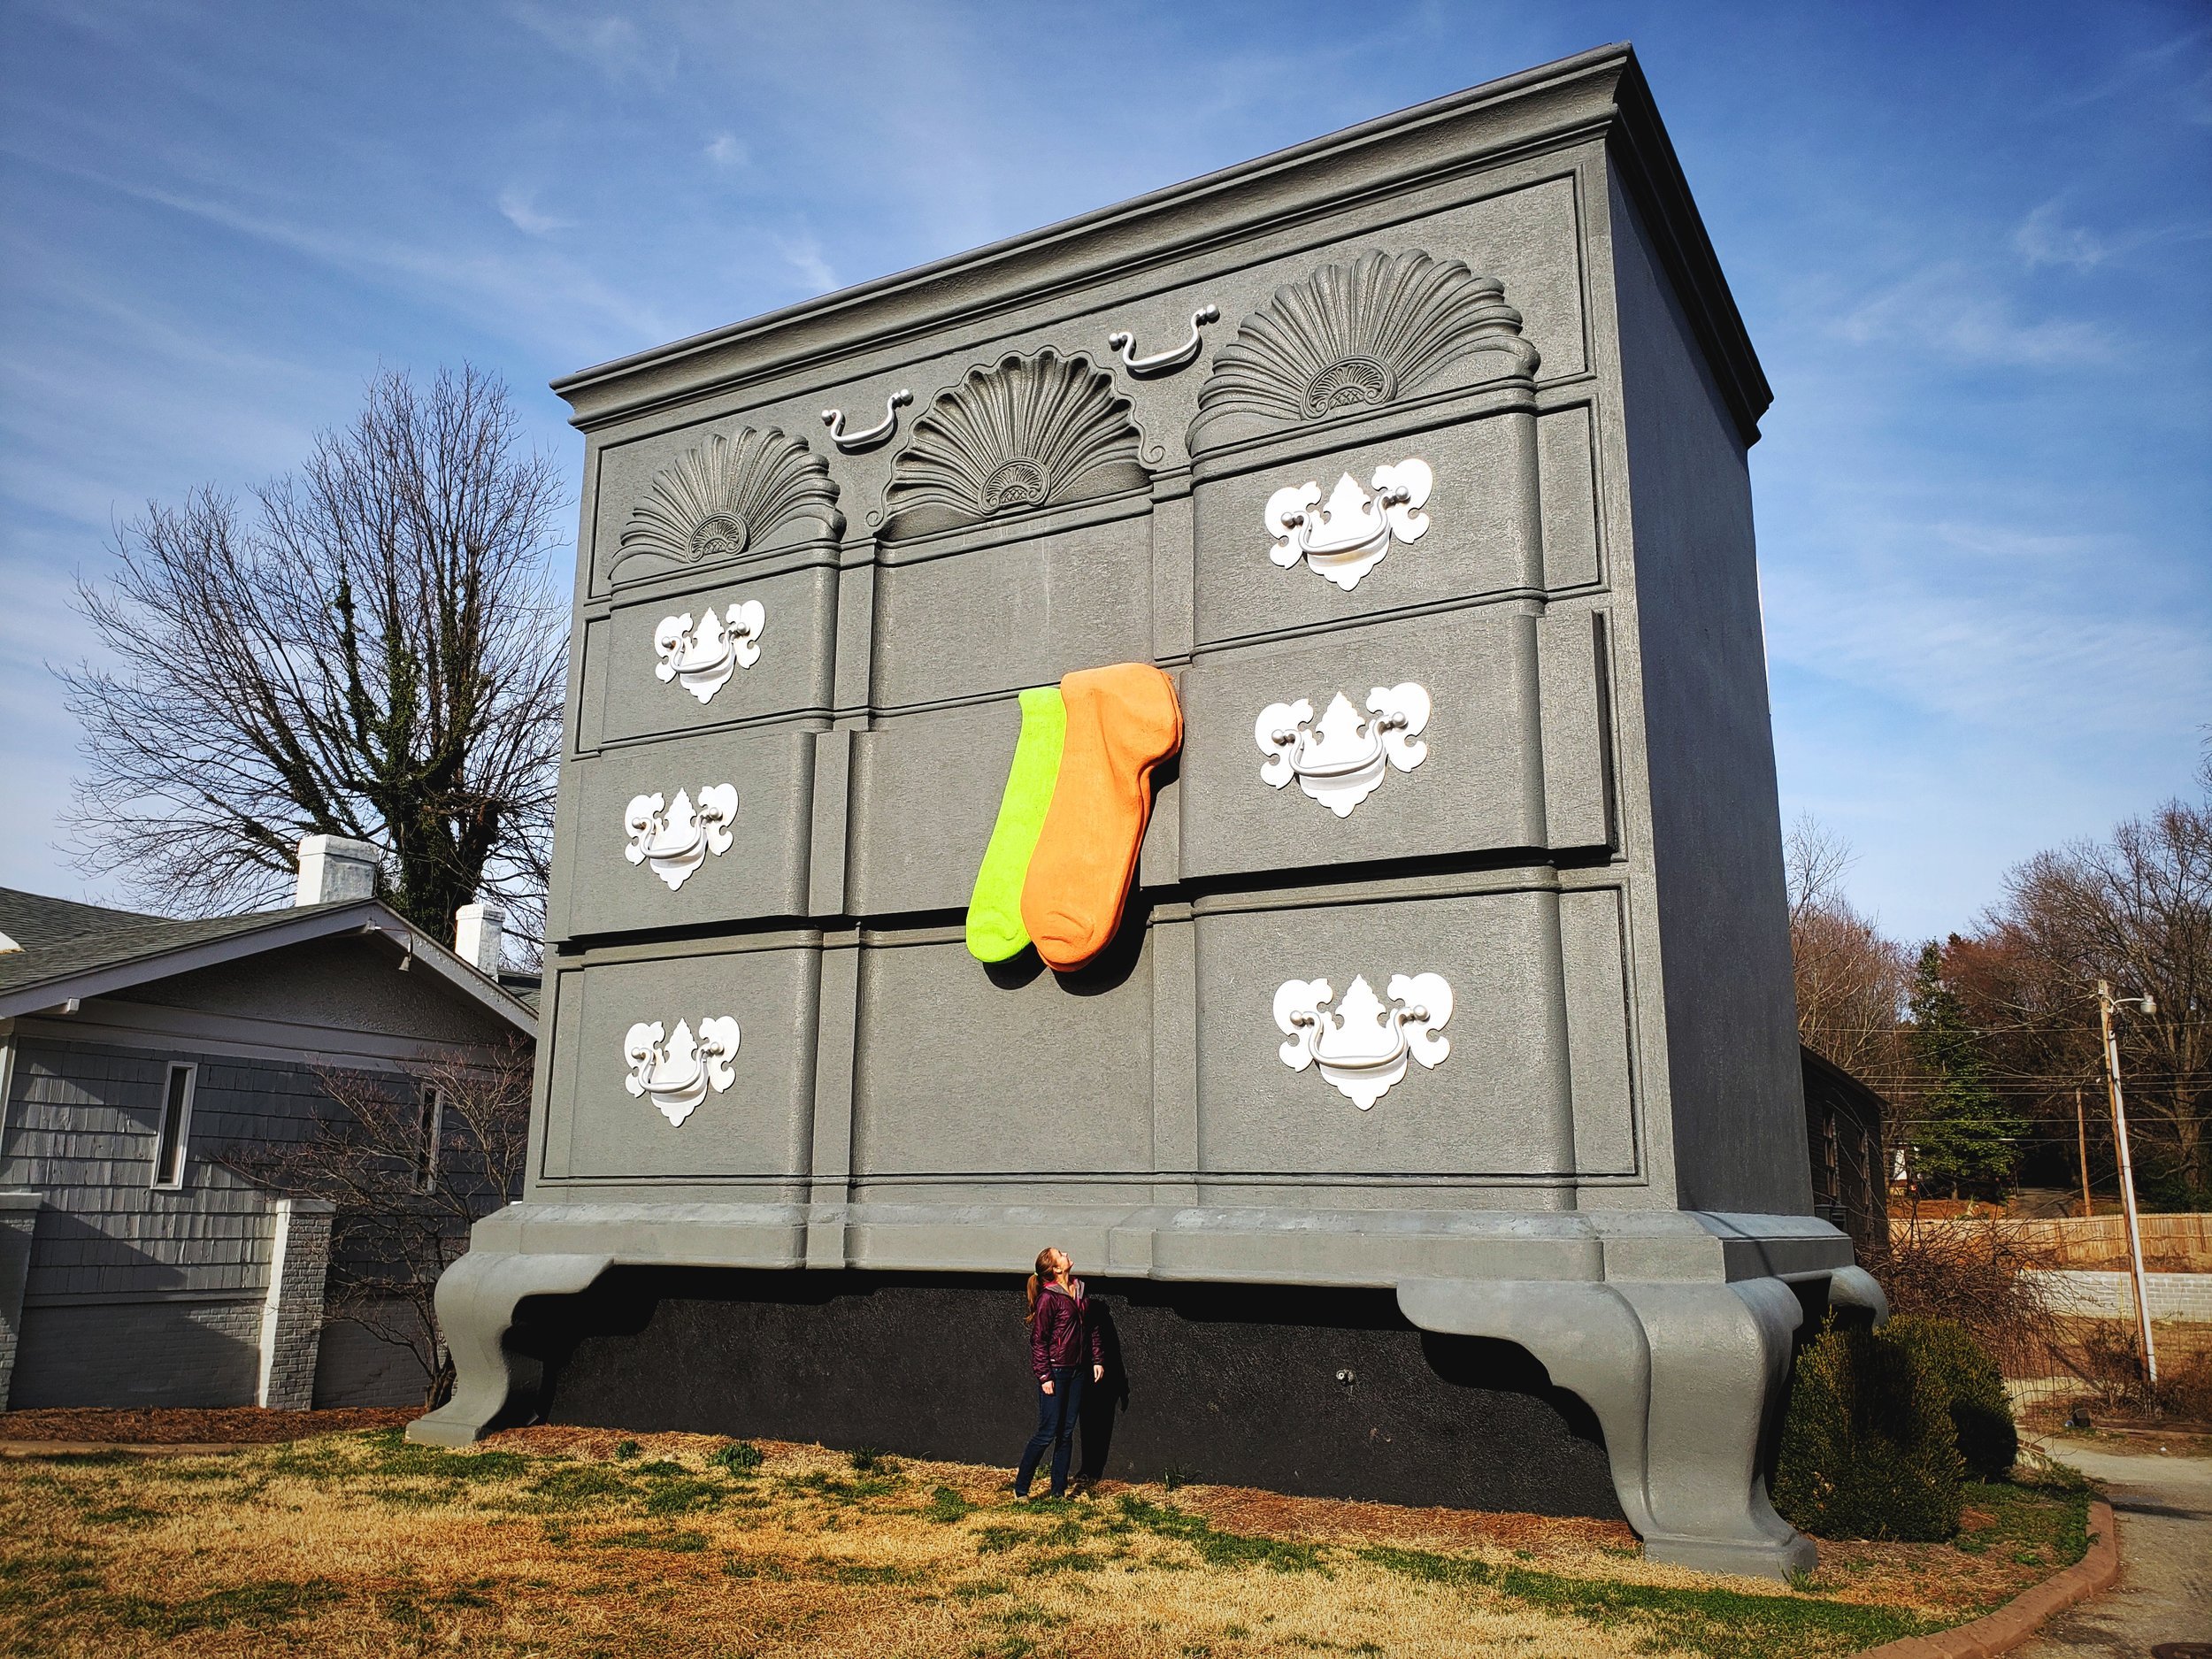 We loved the massive colorful socks hanging out of the original Bureau of Information in High Point, NC.